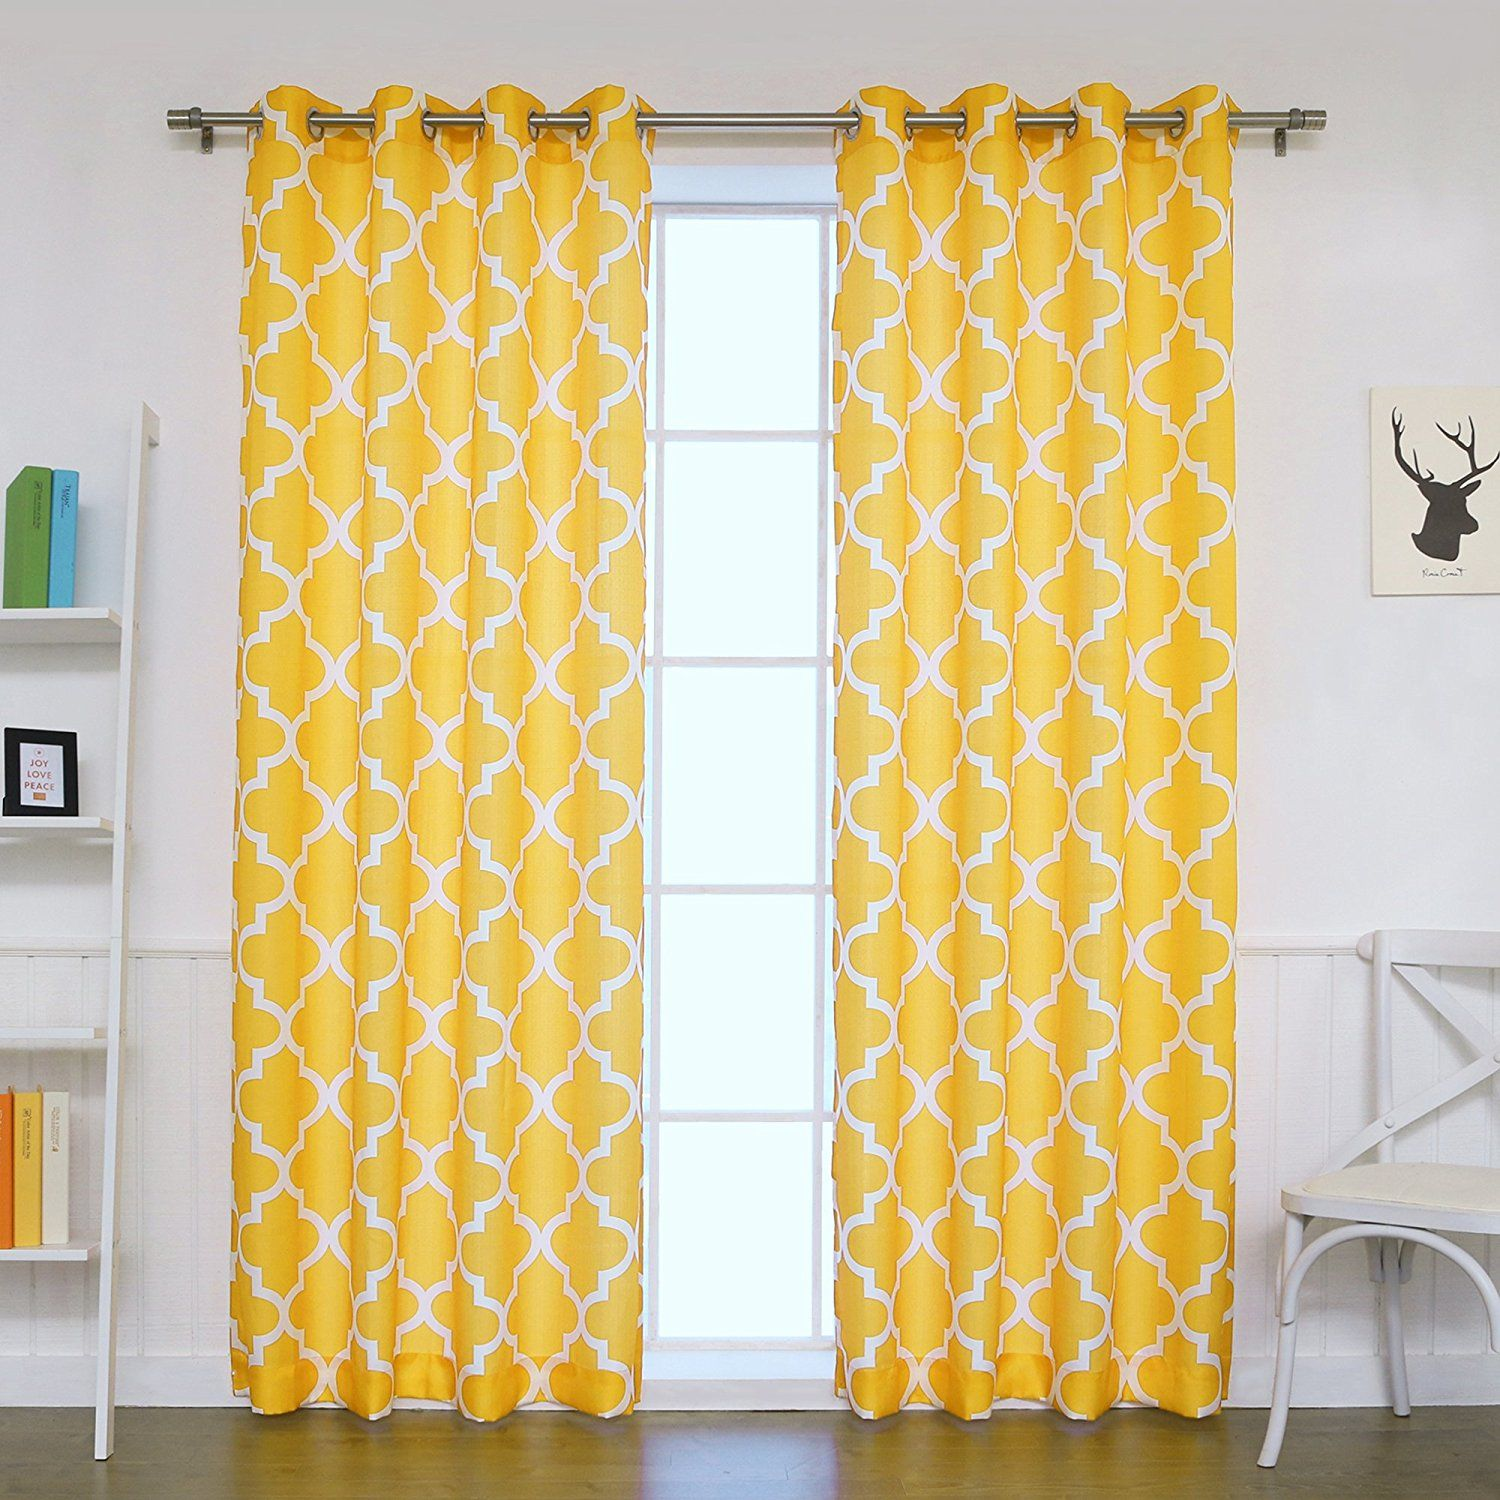 Best Home Fashion Oxford Basketweave Moroccan Print Curtains Stainless Steel Nickel Grommet Top Yellow